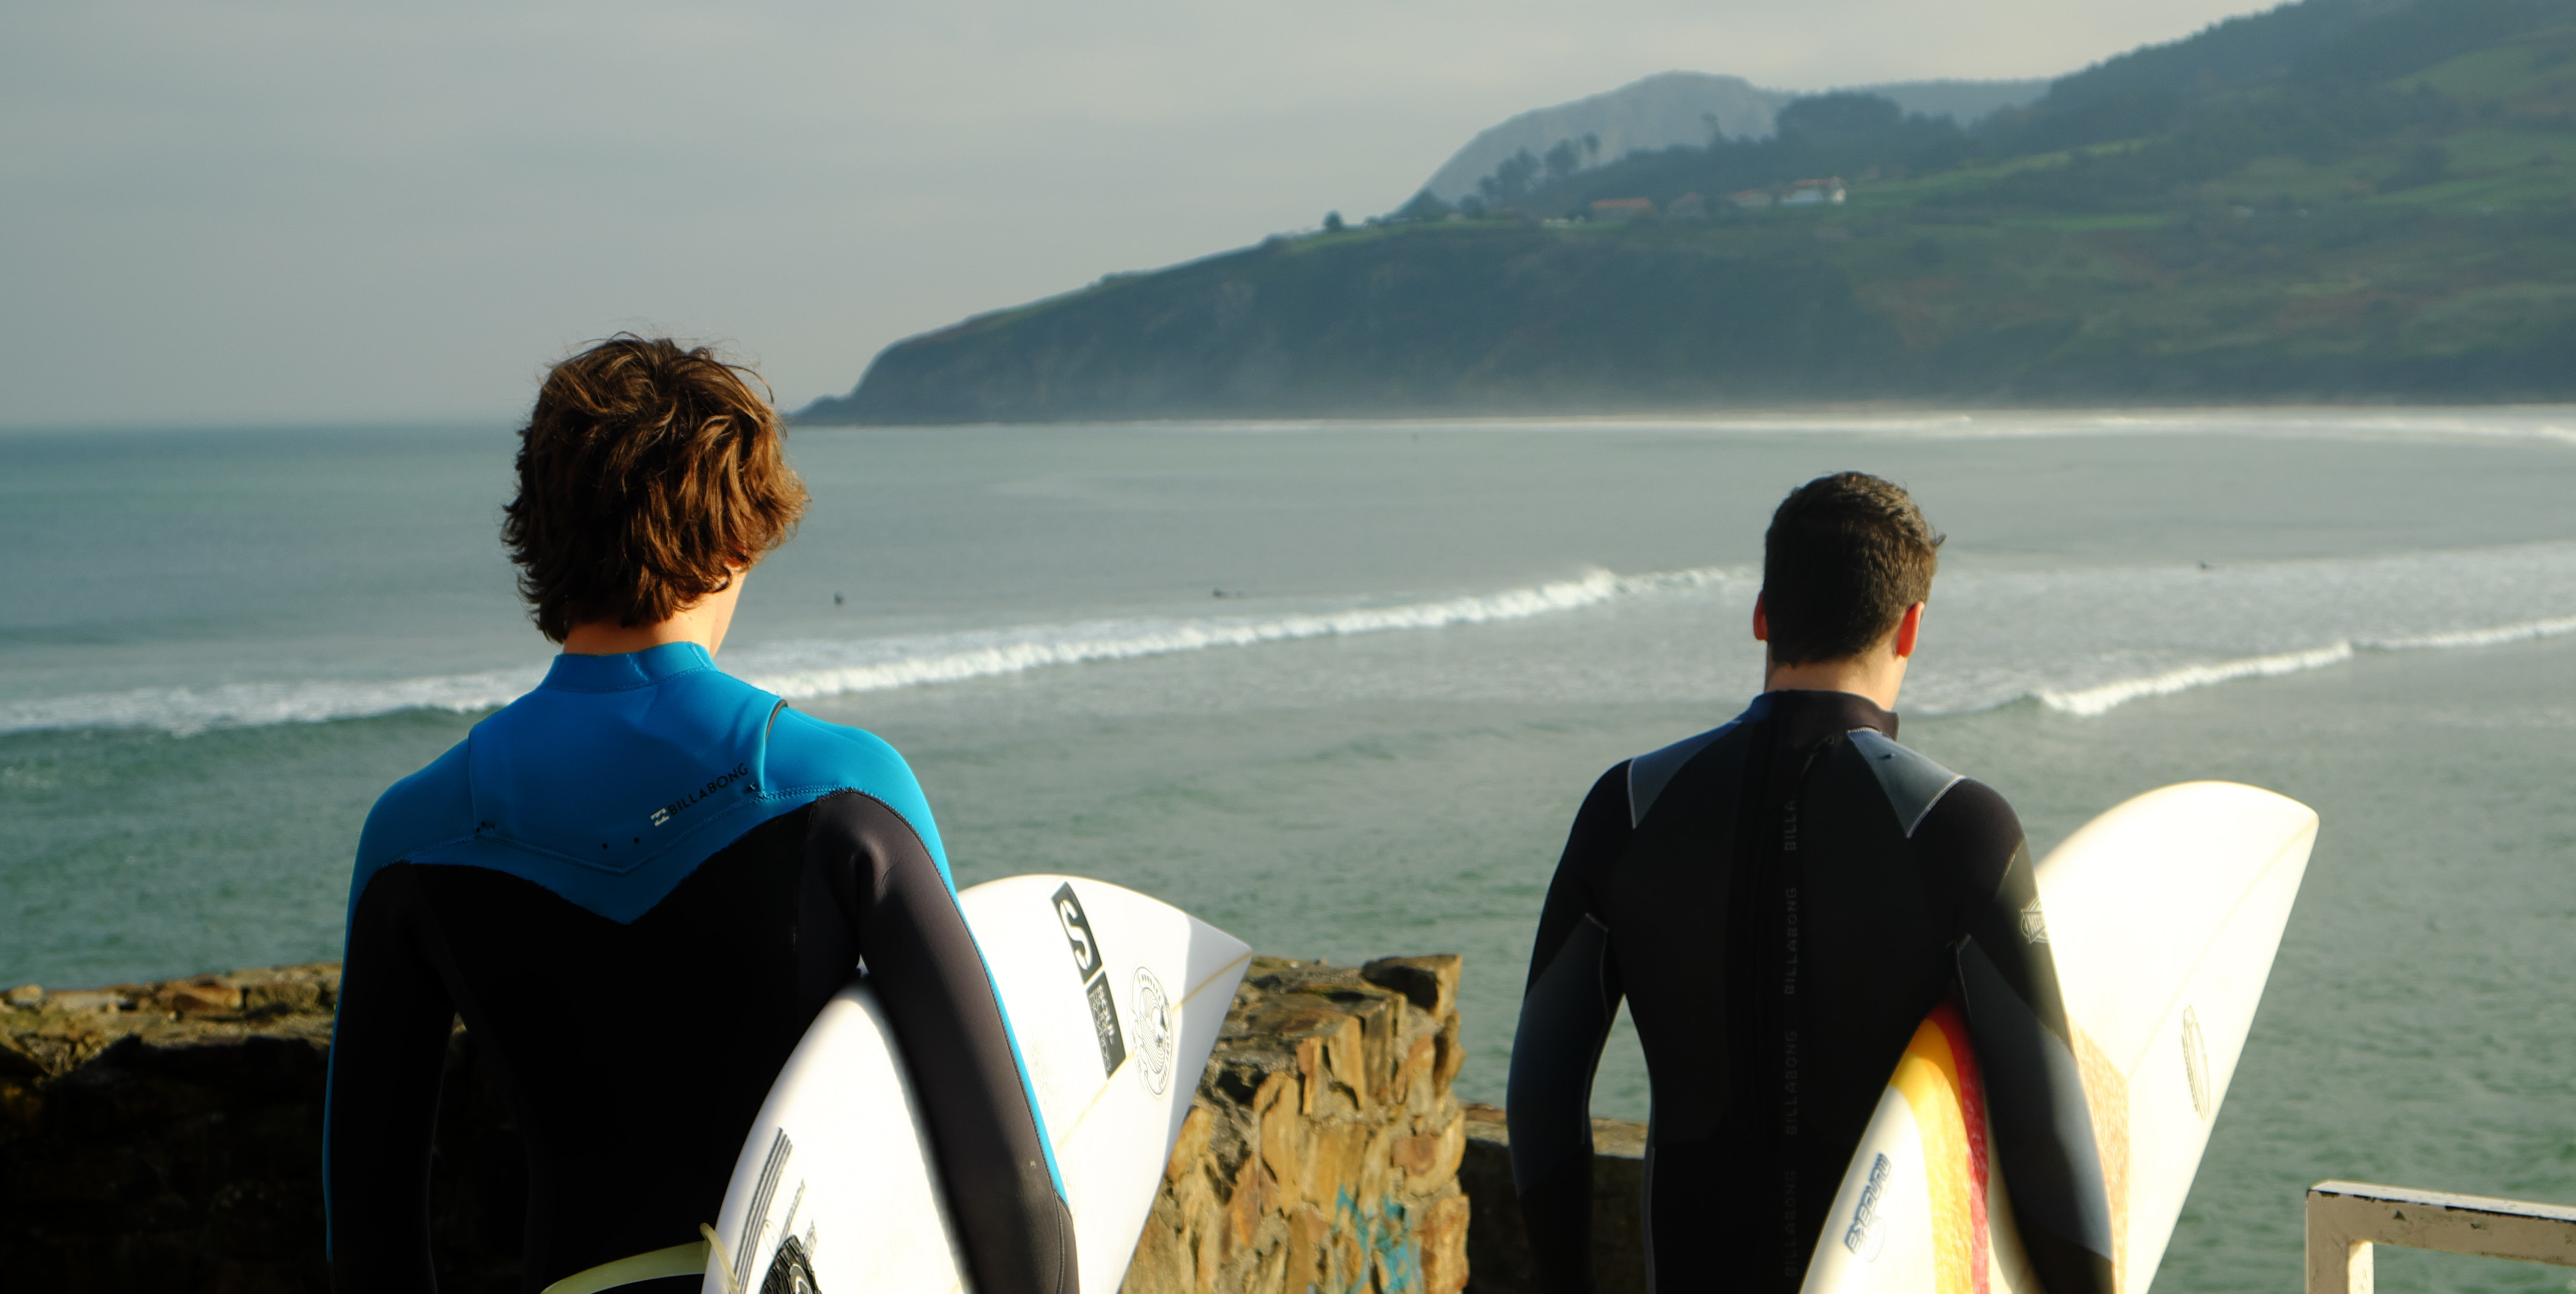 Two male surfers walking towards the beach to go surfing